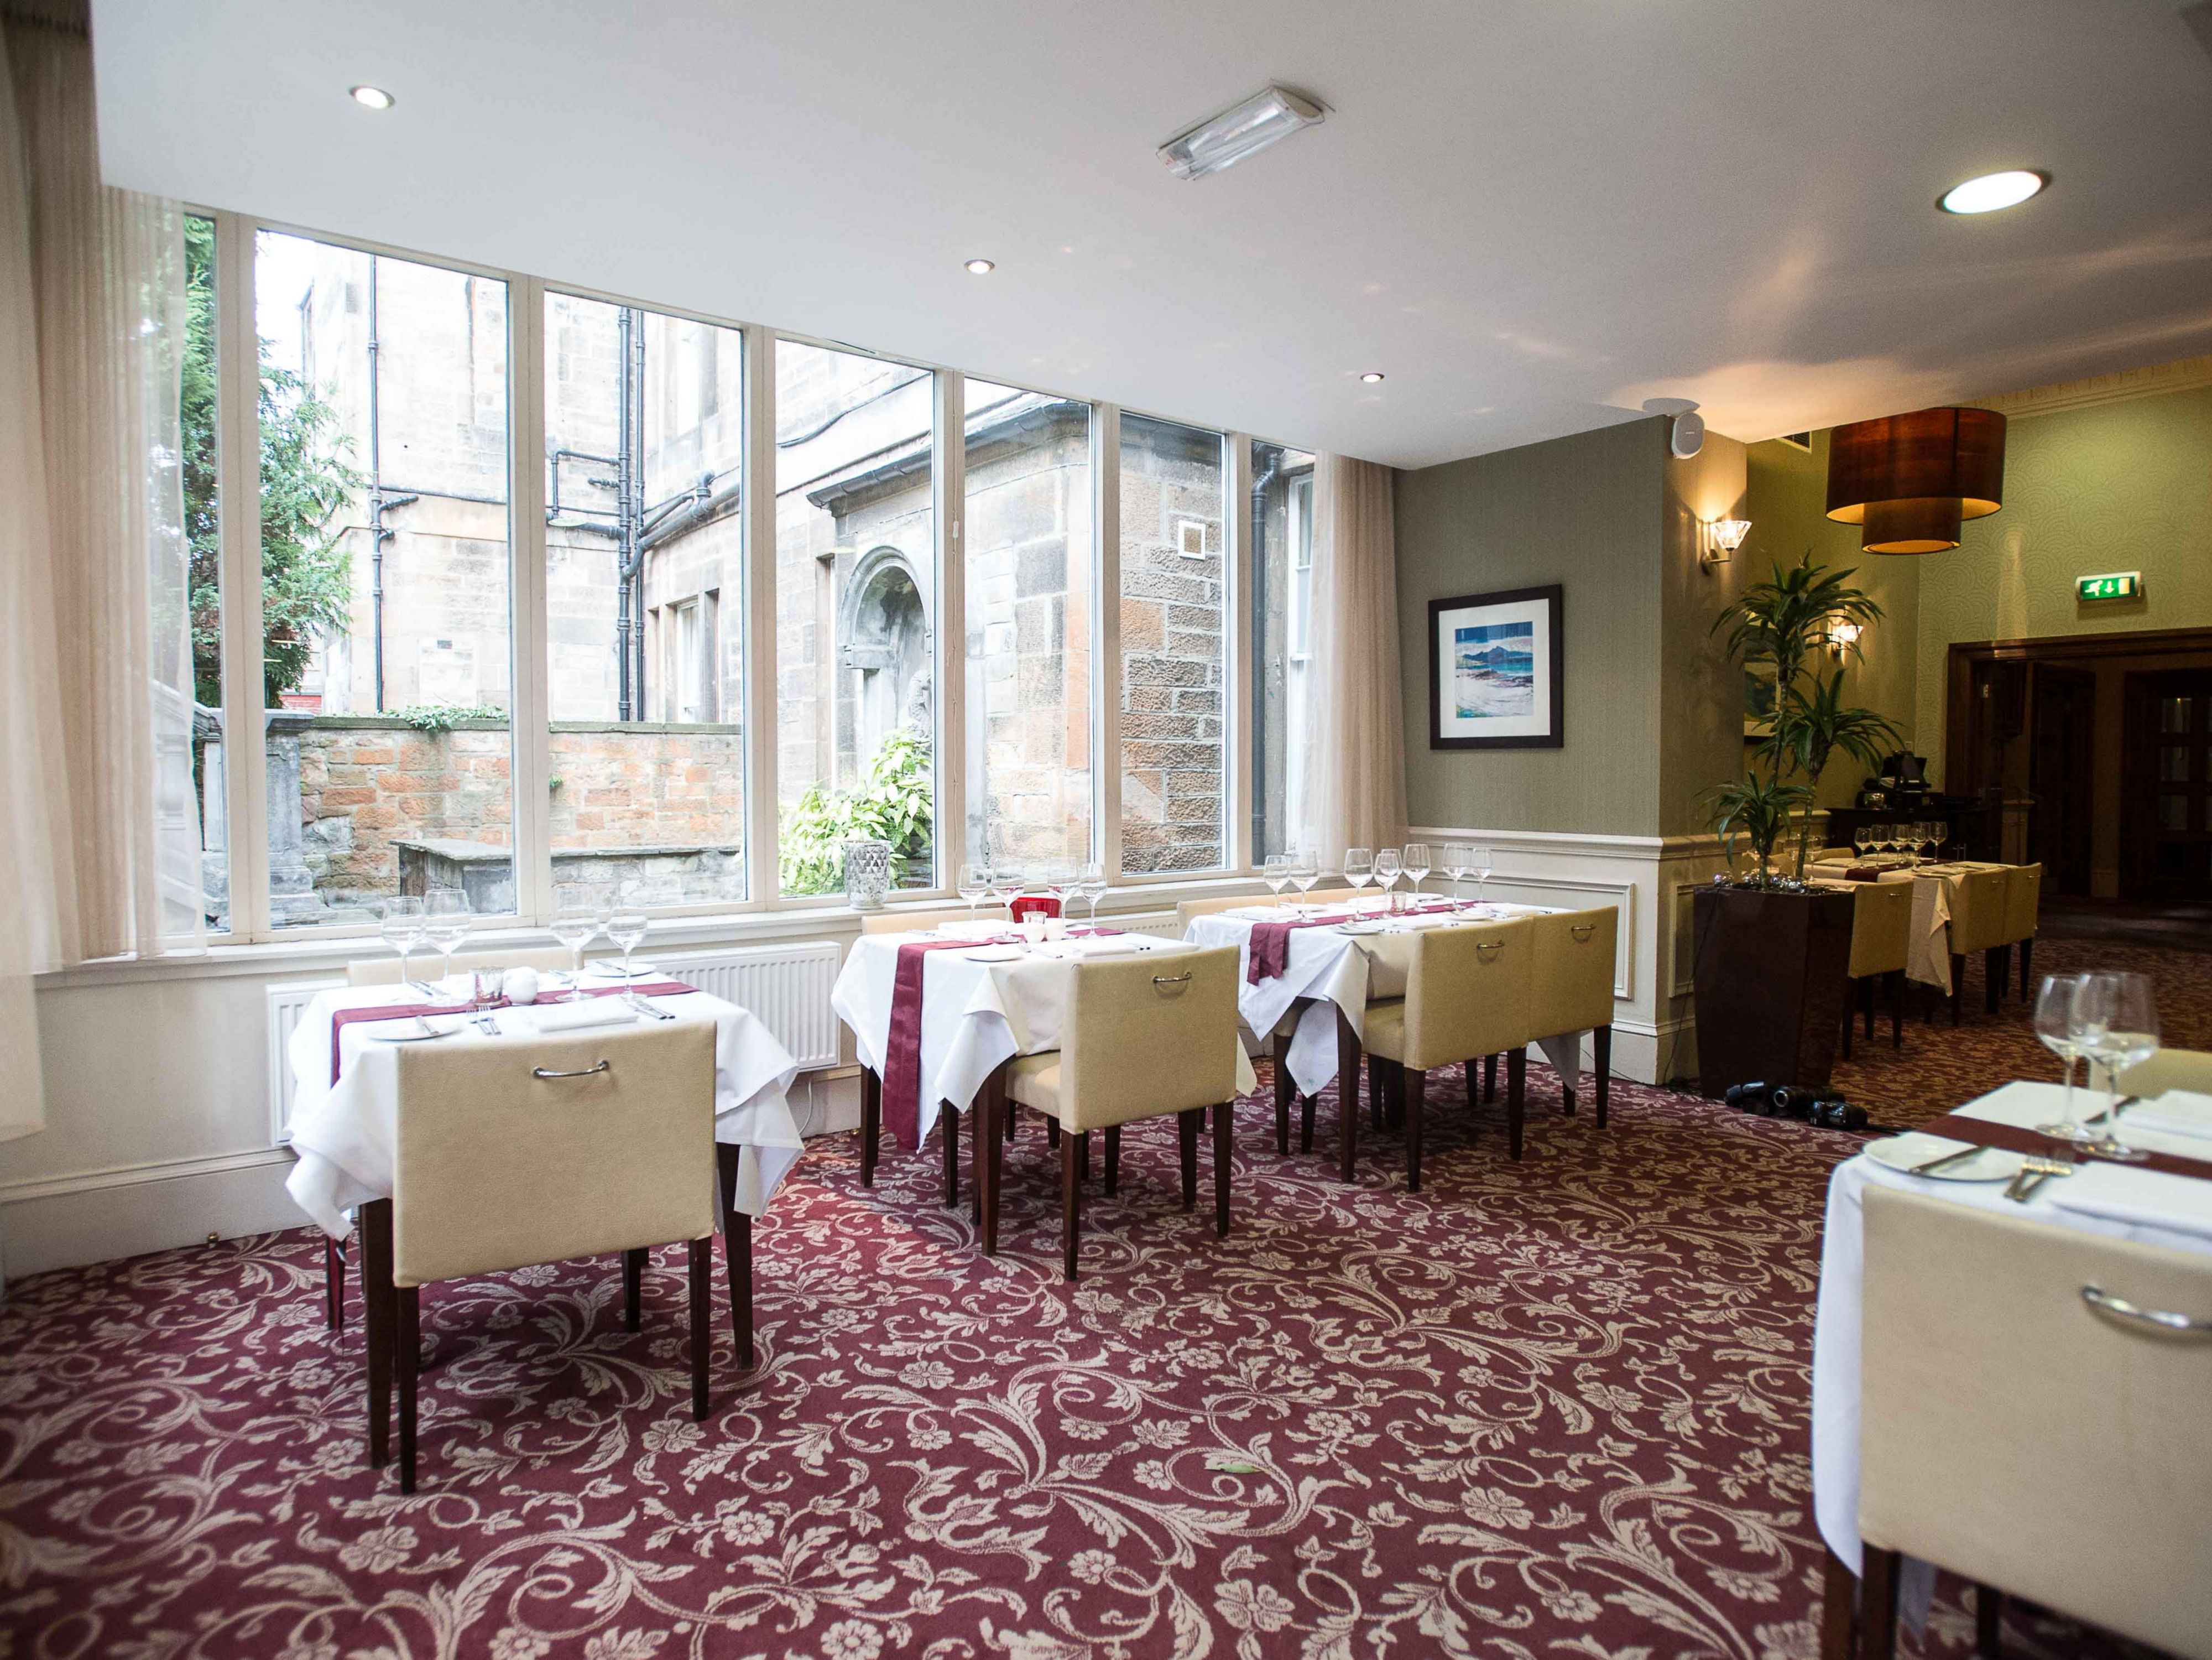 User review of terrace restaurant crowne plaza by for 18 royal terrace edinburgh eh7 5aq